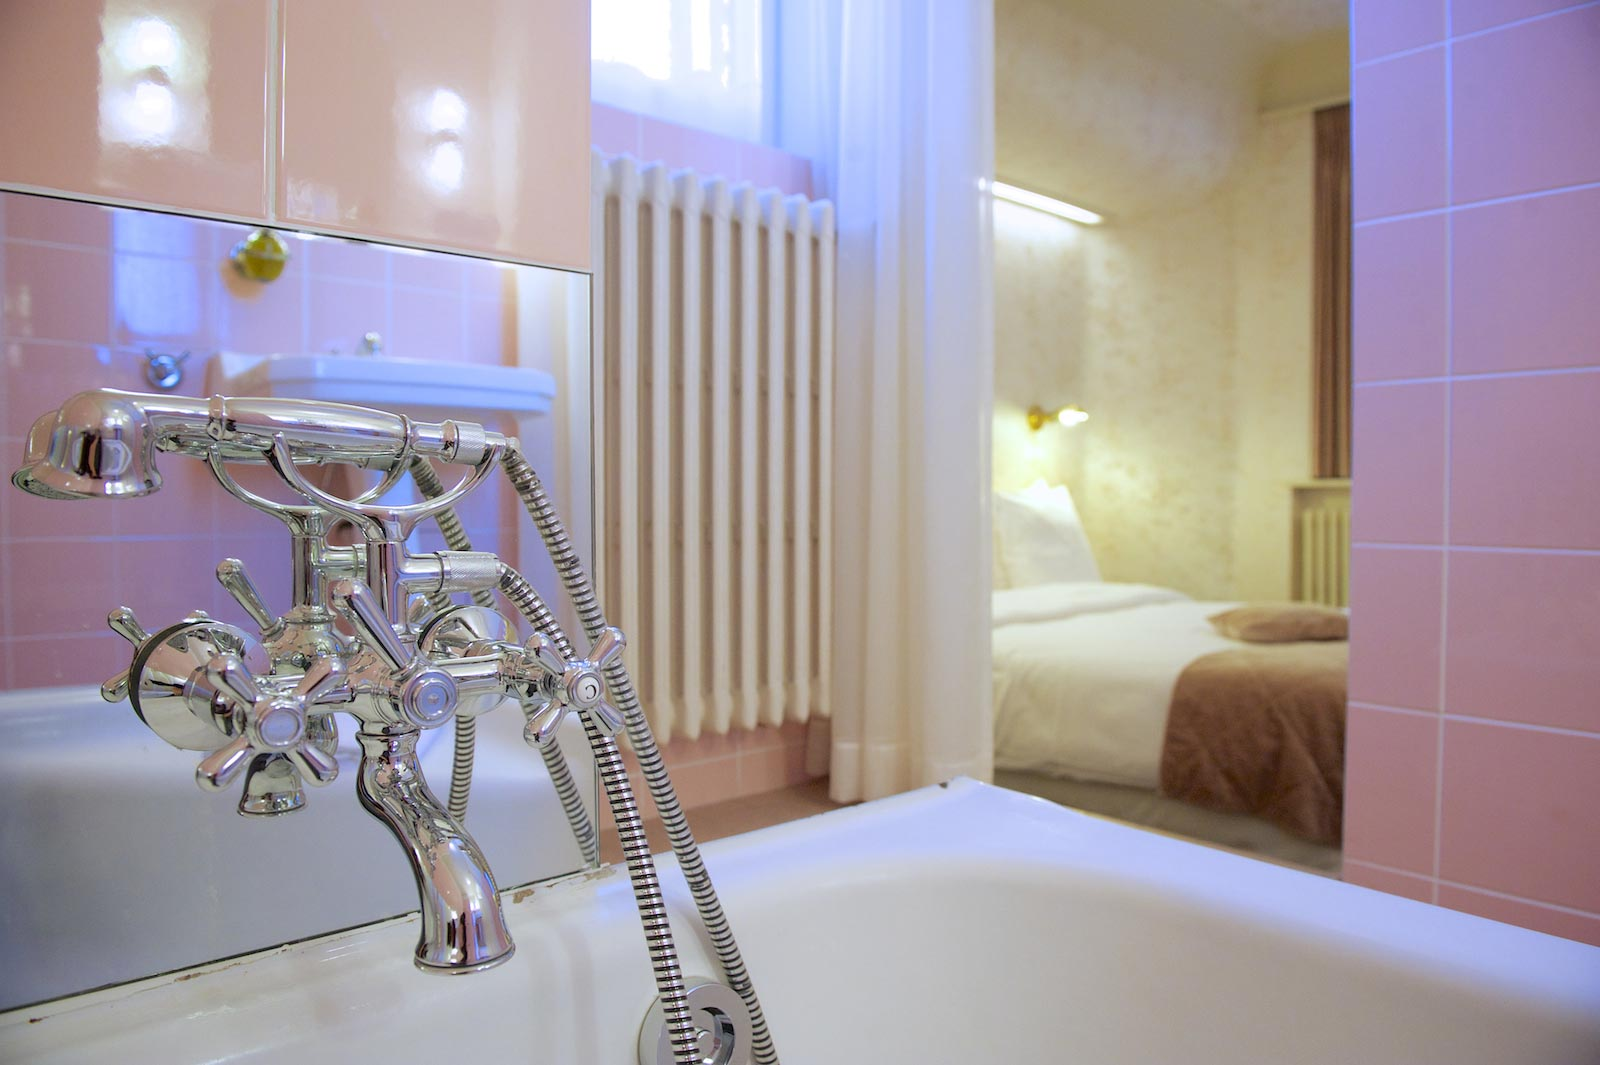 hotel-le-berger-rooms-superieur-blanche-09-08.jpg